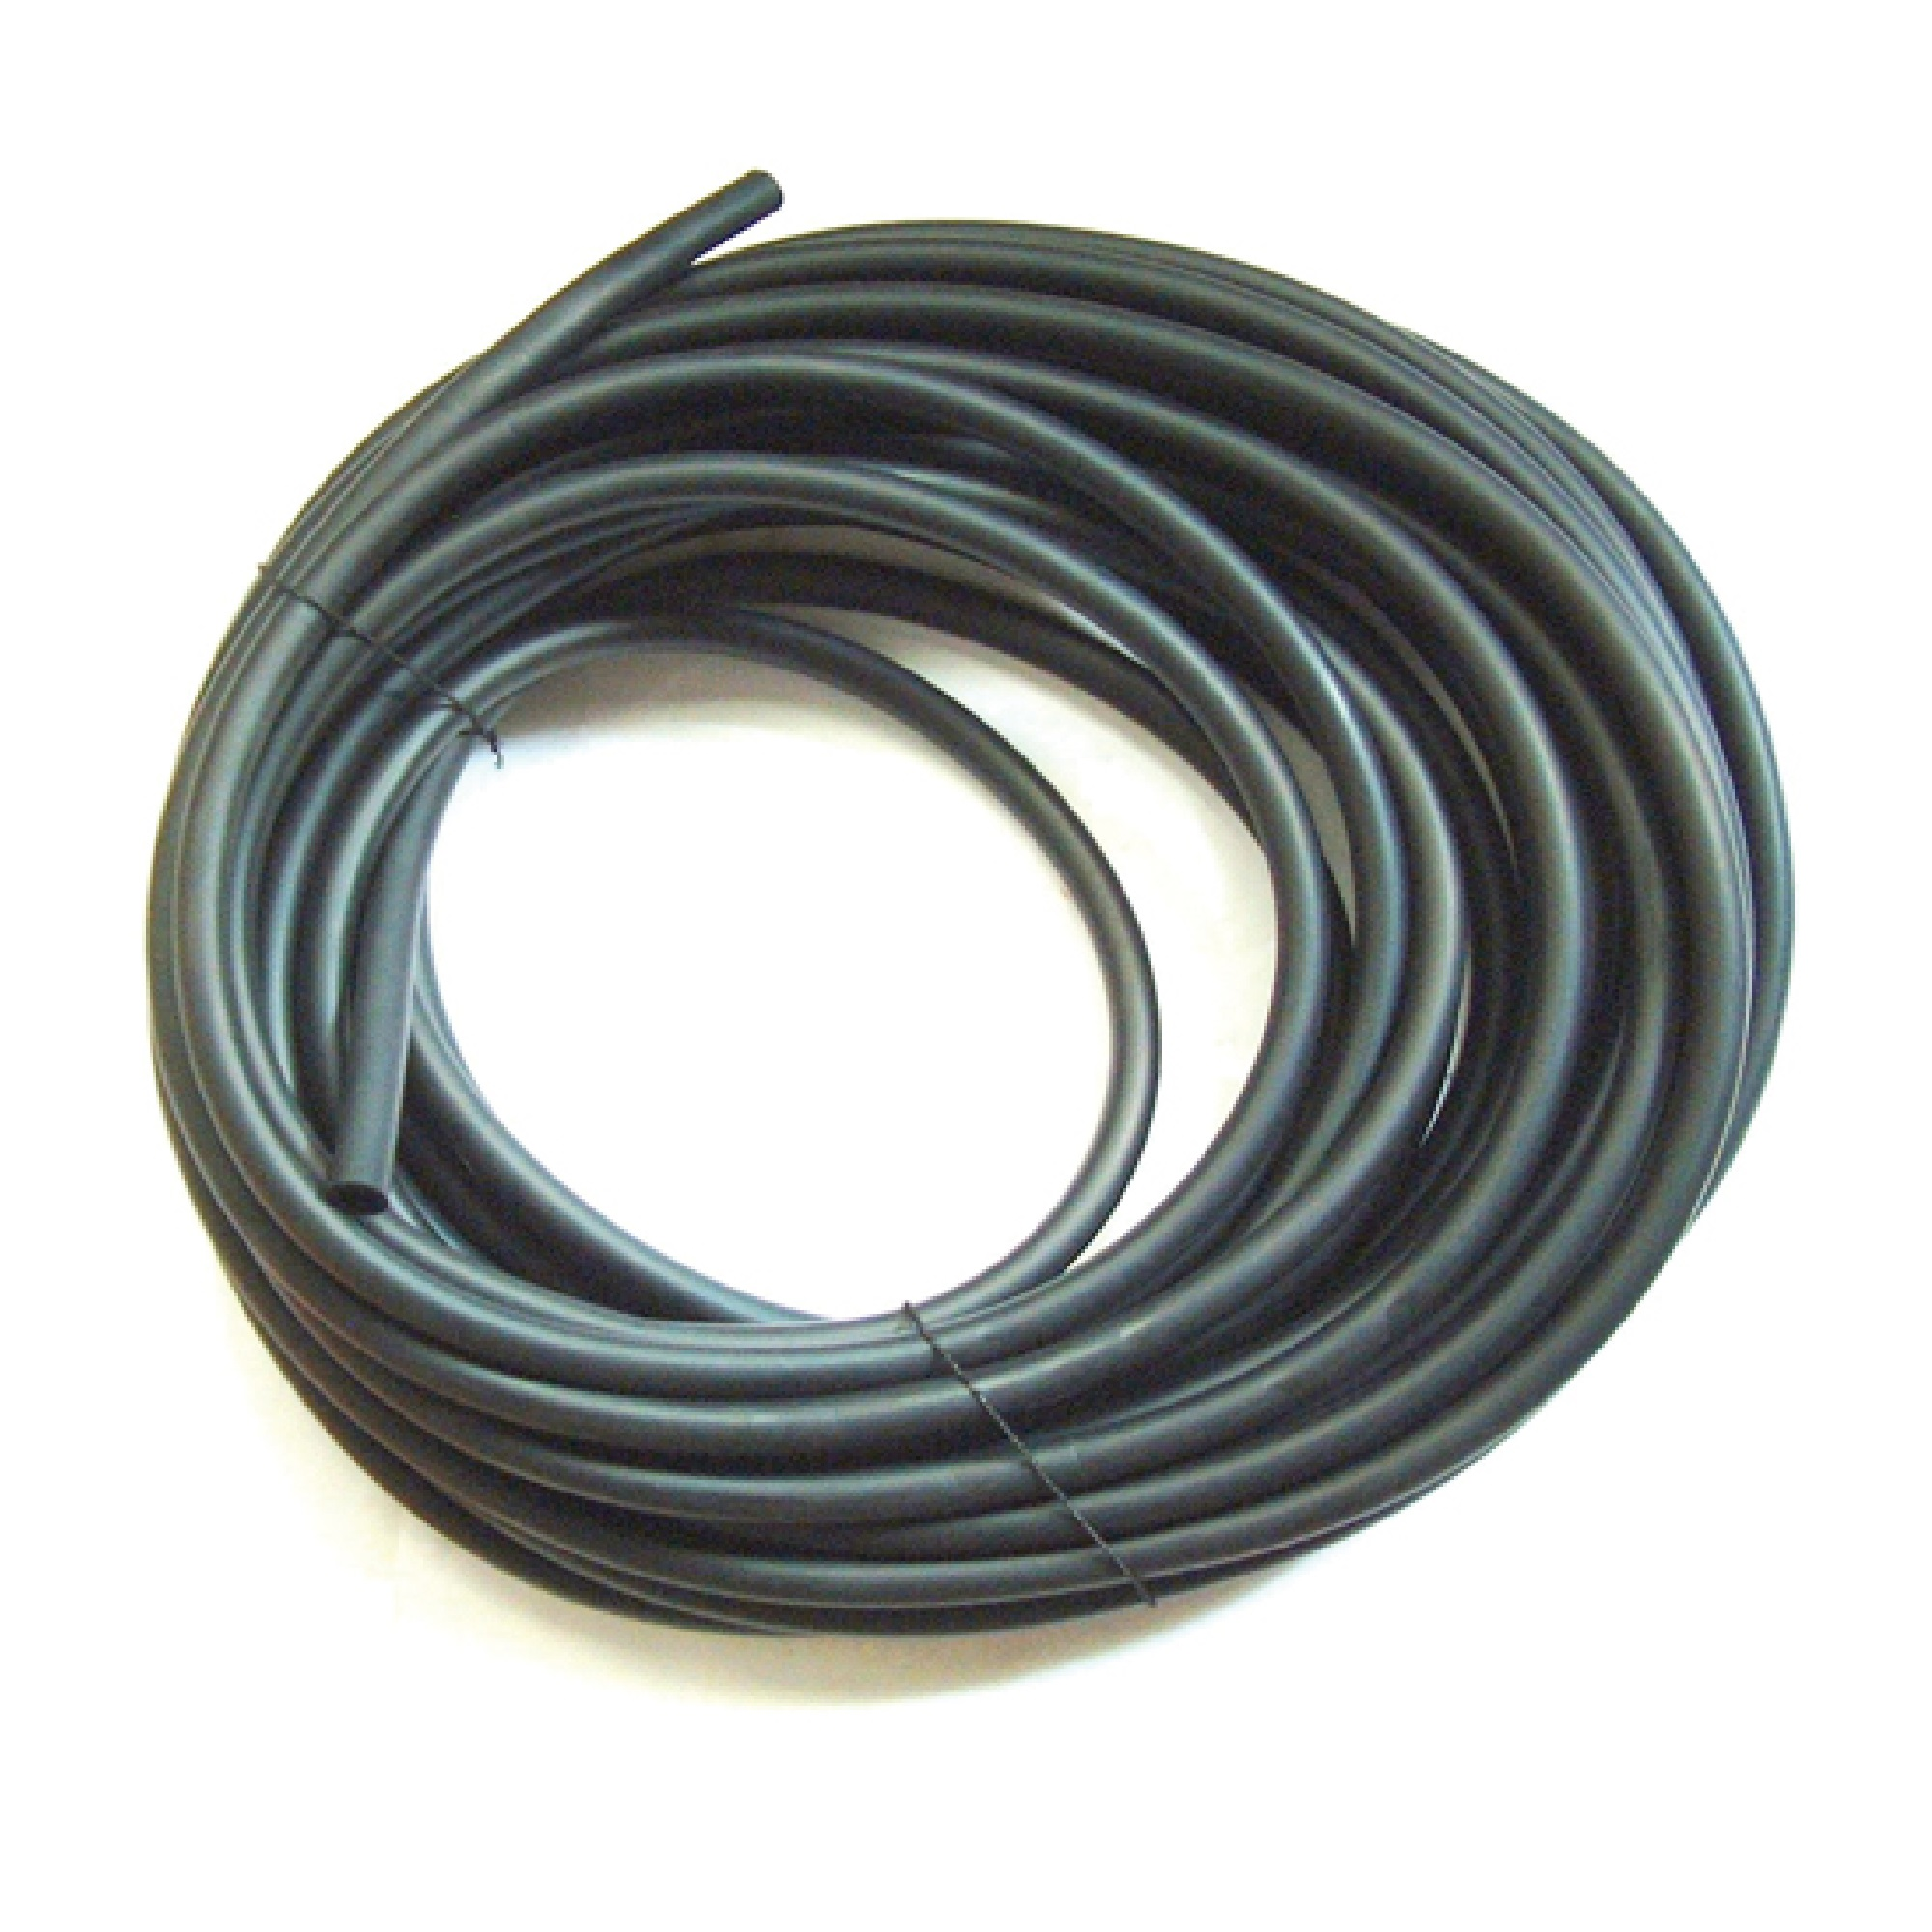 1 metre of spare black nitrate rubber hose for LPG